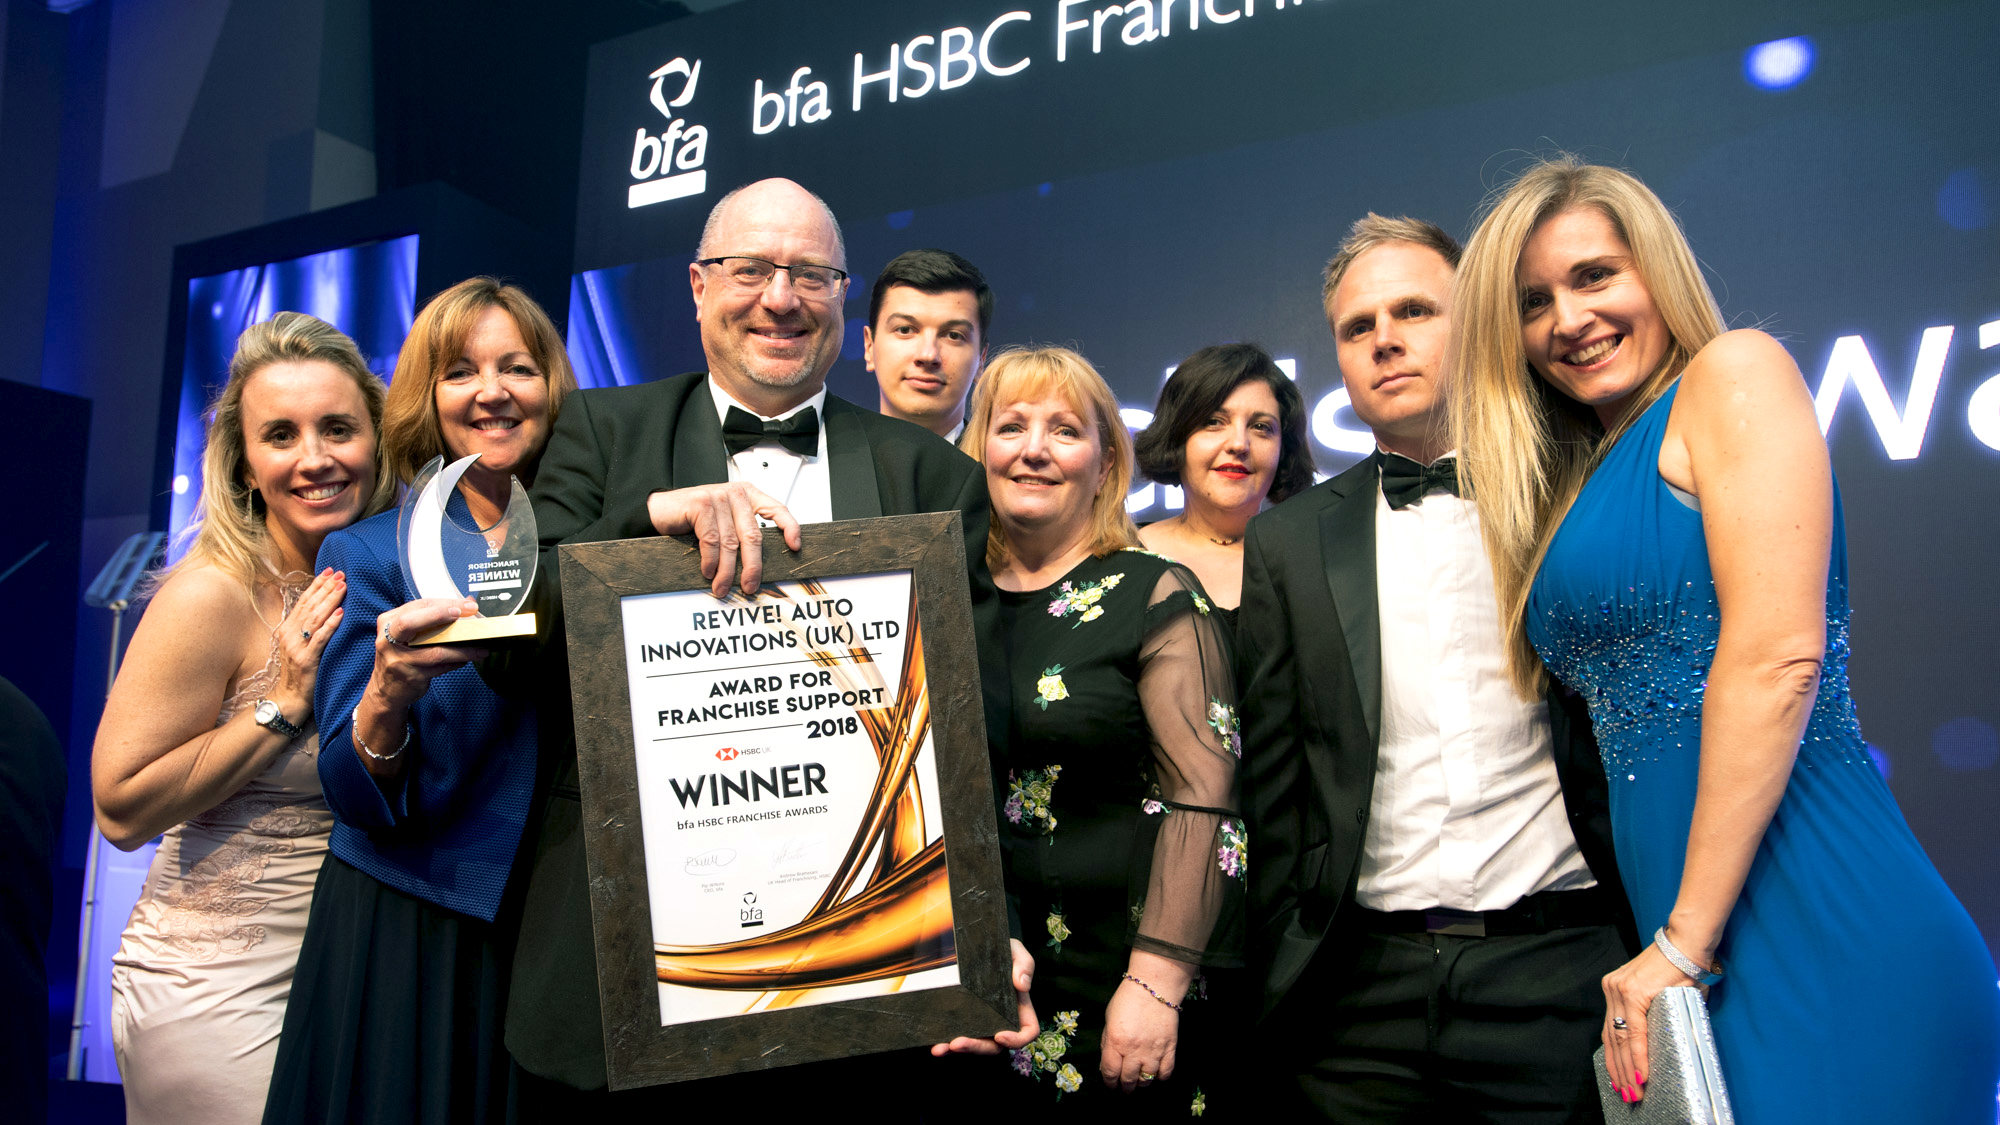 revive-bfa-hsbc-winners-franchise-support-2018